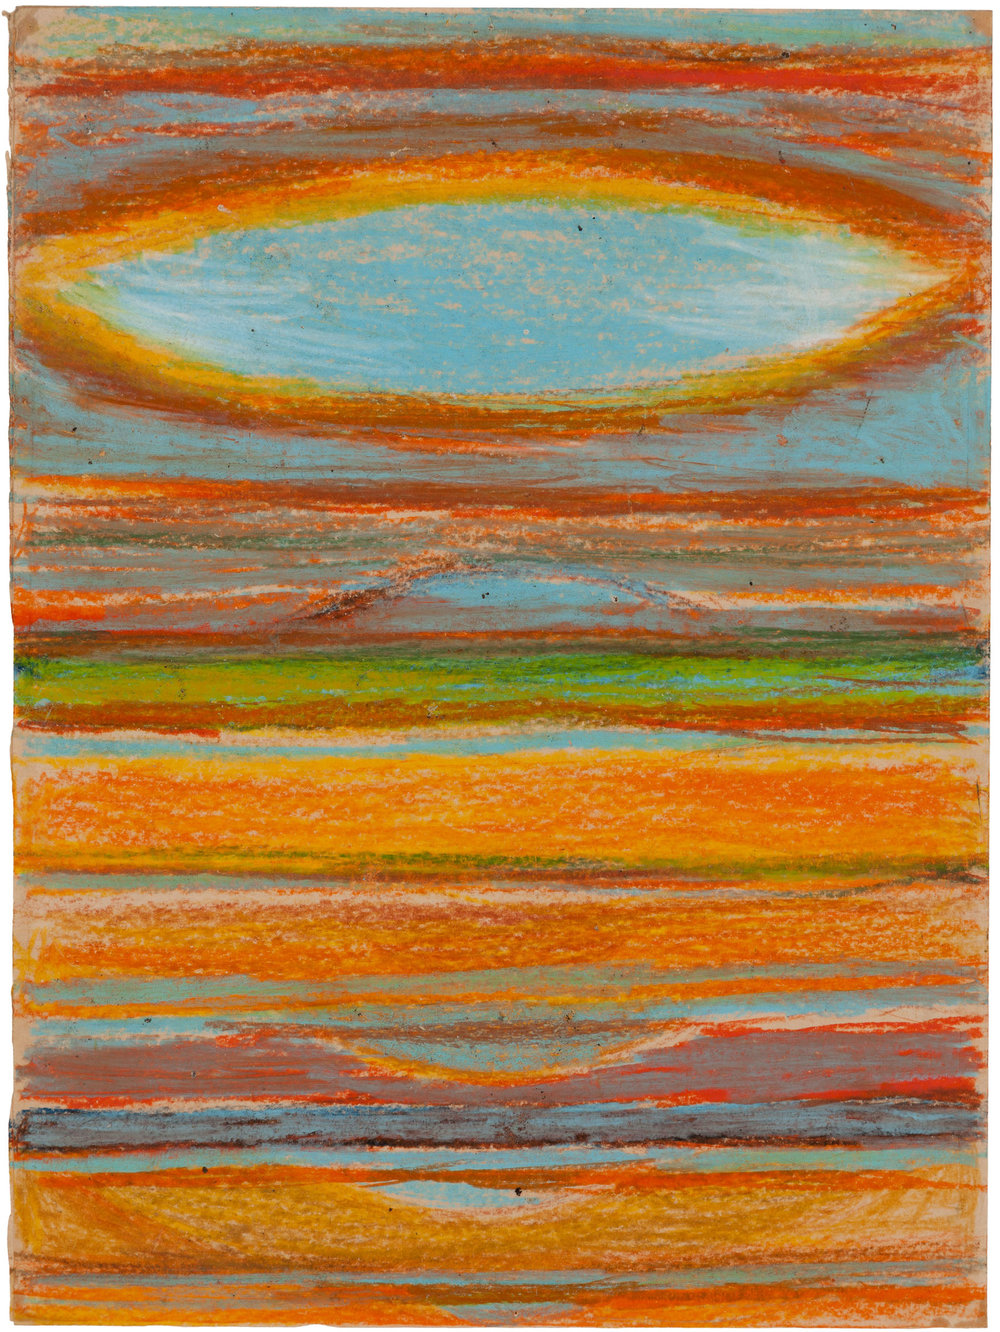 Hedda Sterne, Horizon Study, 1964, Oil pastel on paper, 19 in. x 14 in., Collection of the Berkeley Art Museum and Pacific Film Archive